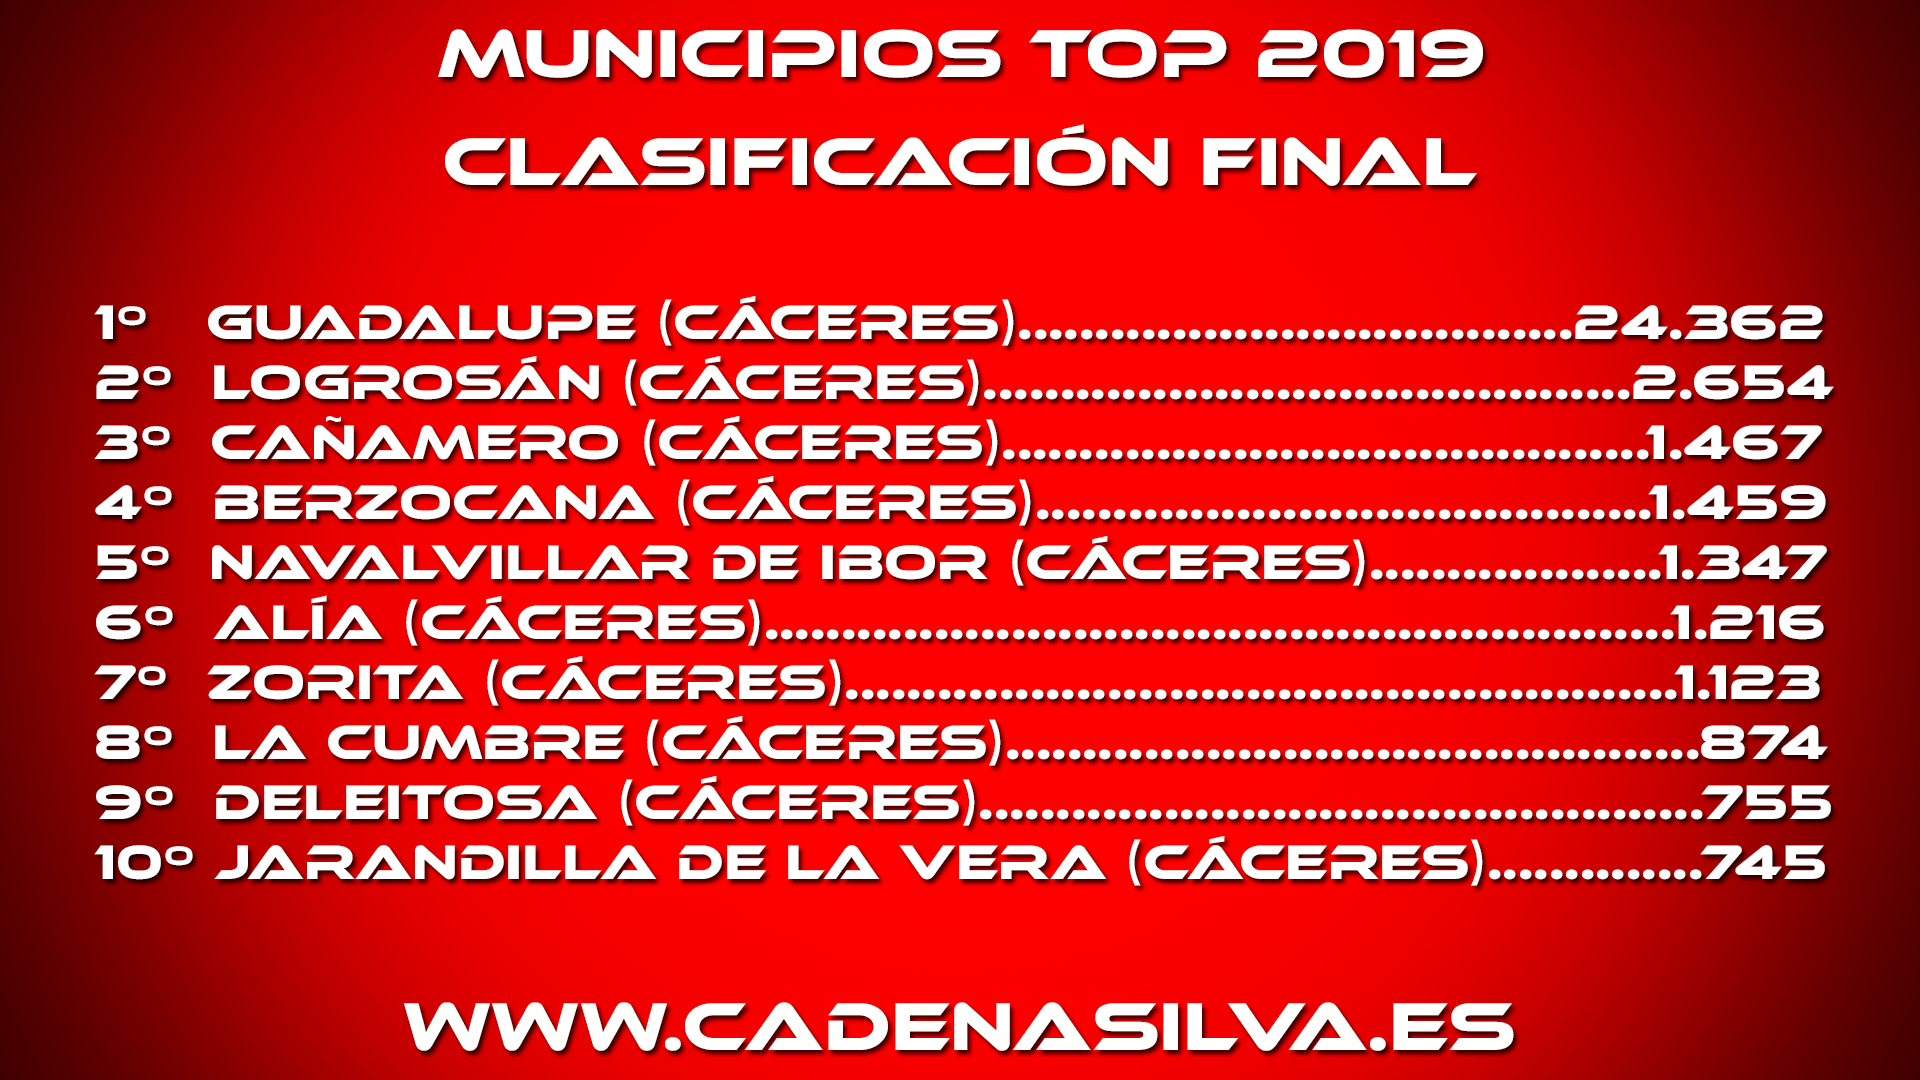 Municipios top 2019